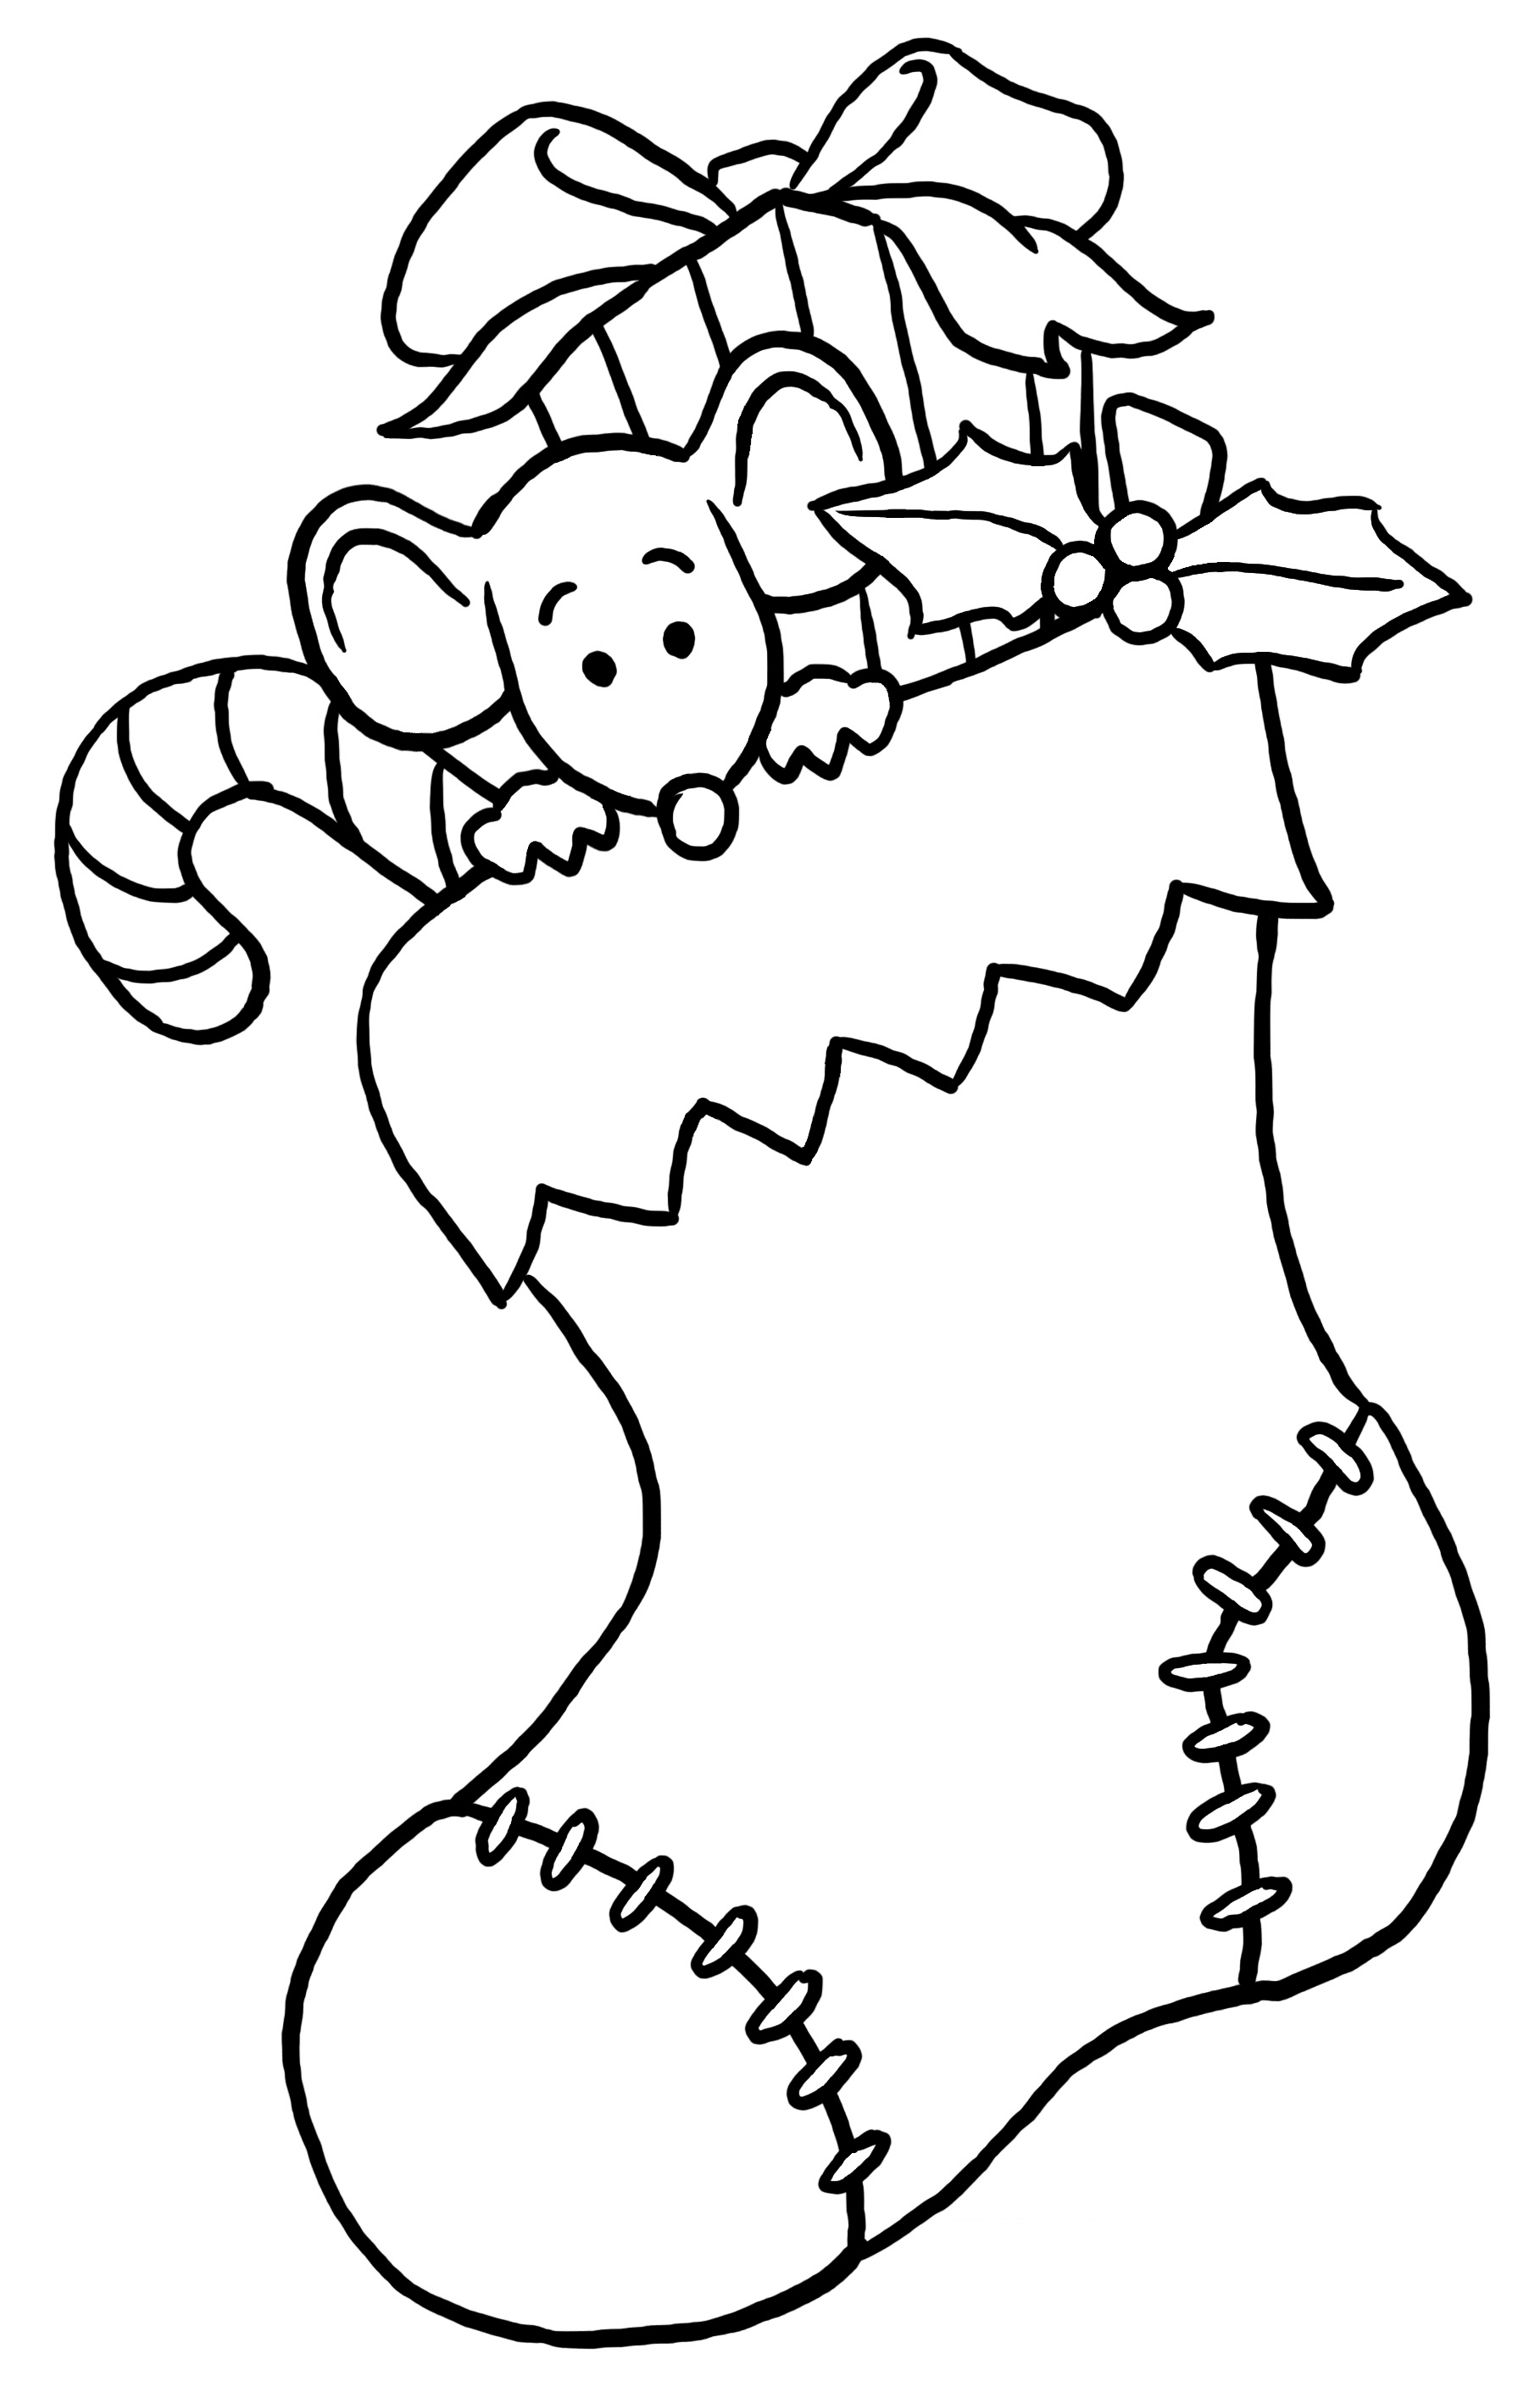 Coloring pages printable free christmas - Christmas Coloring Pages Online Printable Coloring Pages For All